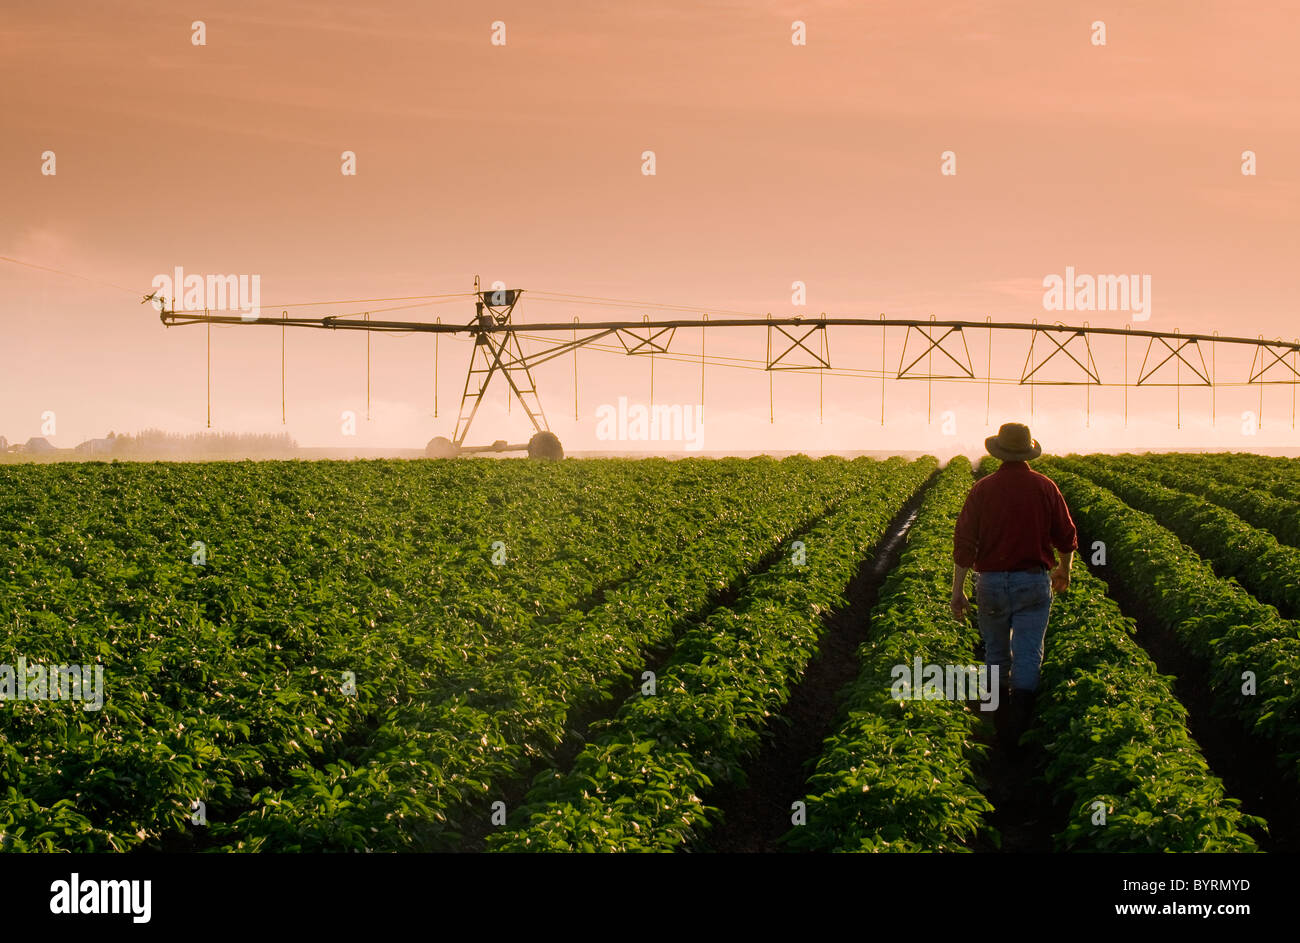 A farmer stands in his mid growth potato field observing a center pivot irrigation system in operation in late afternoon - Stock Image